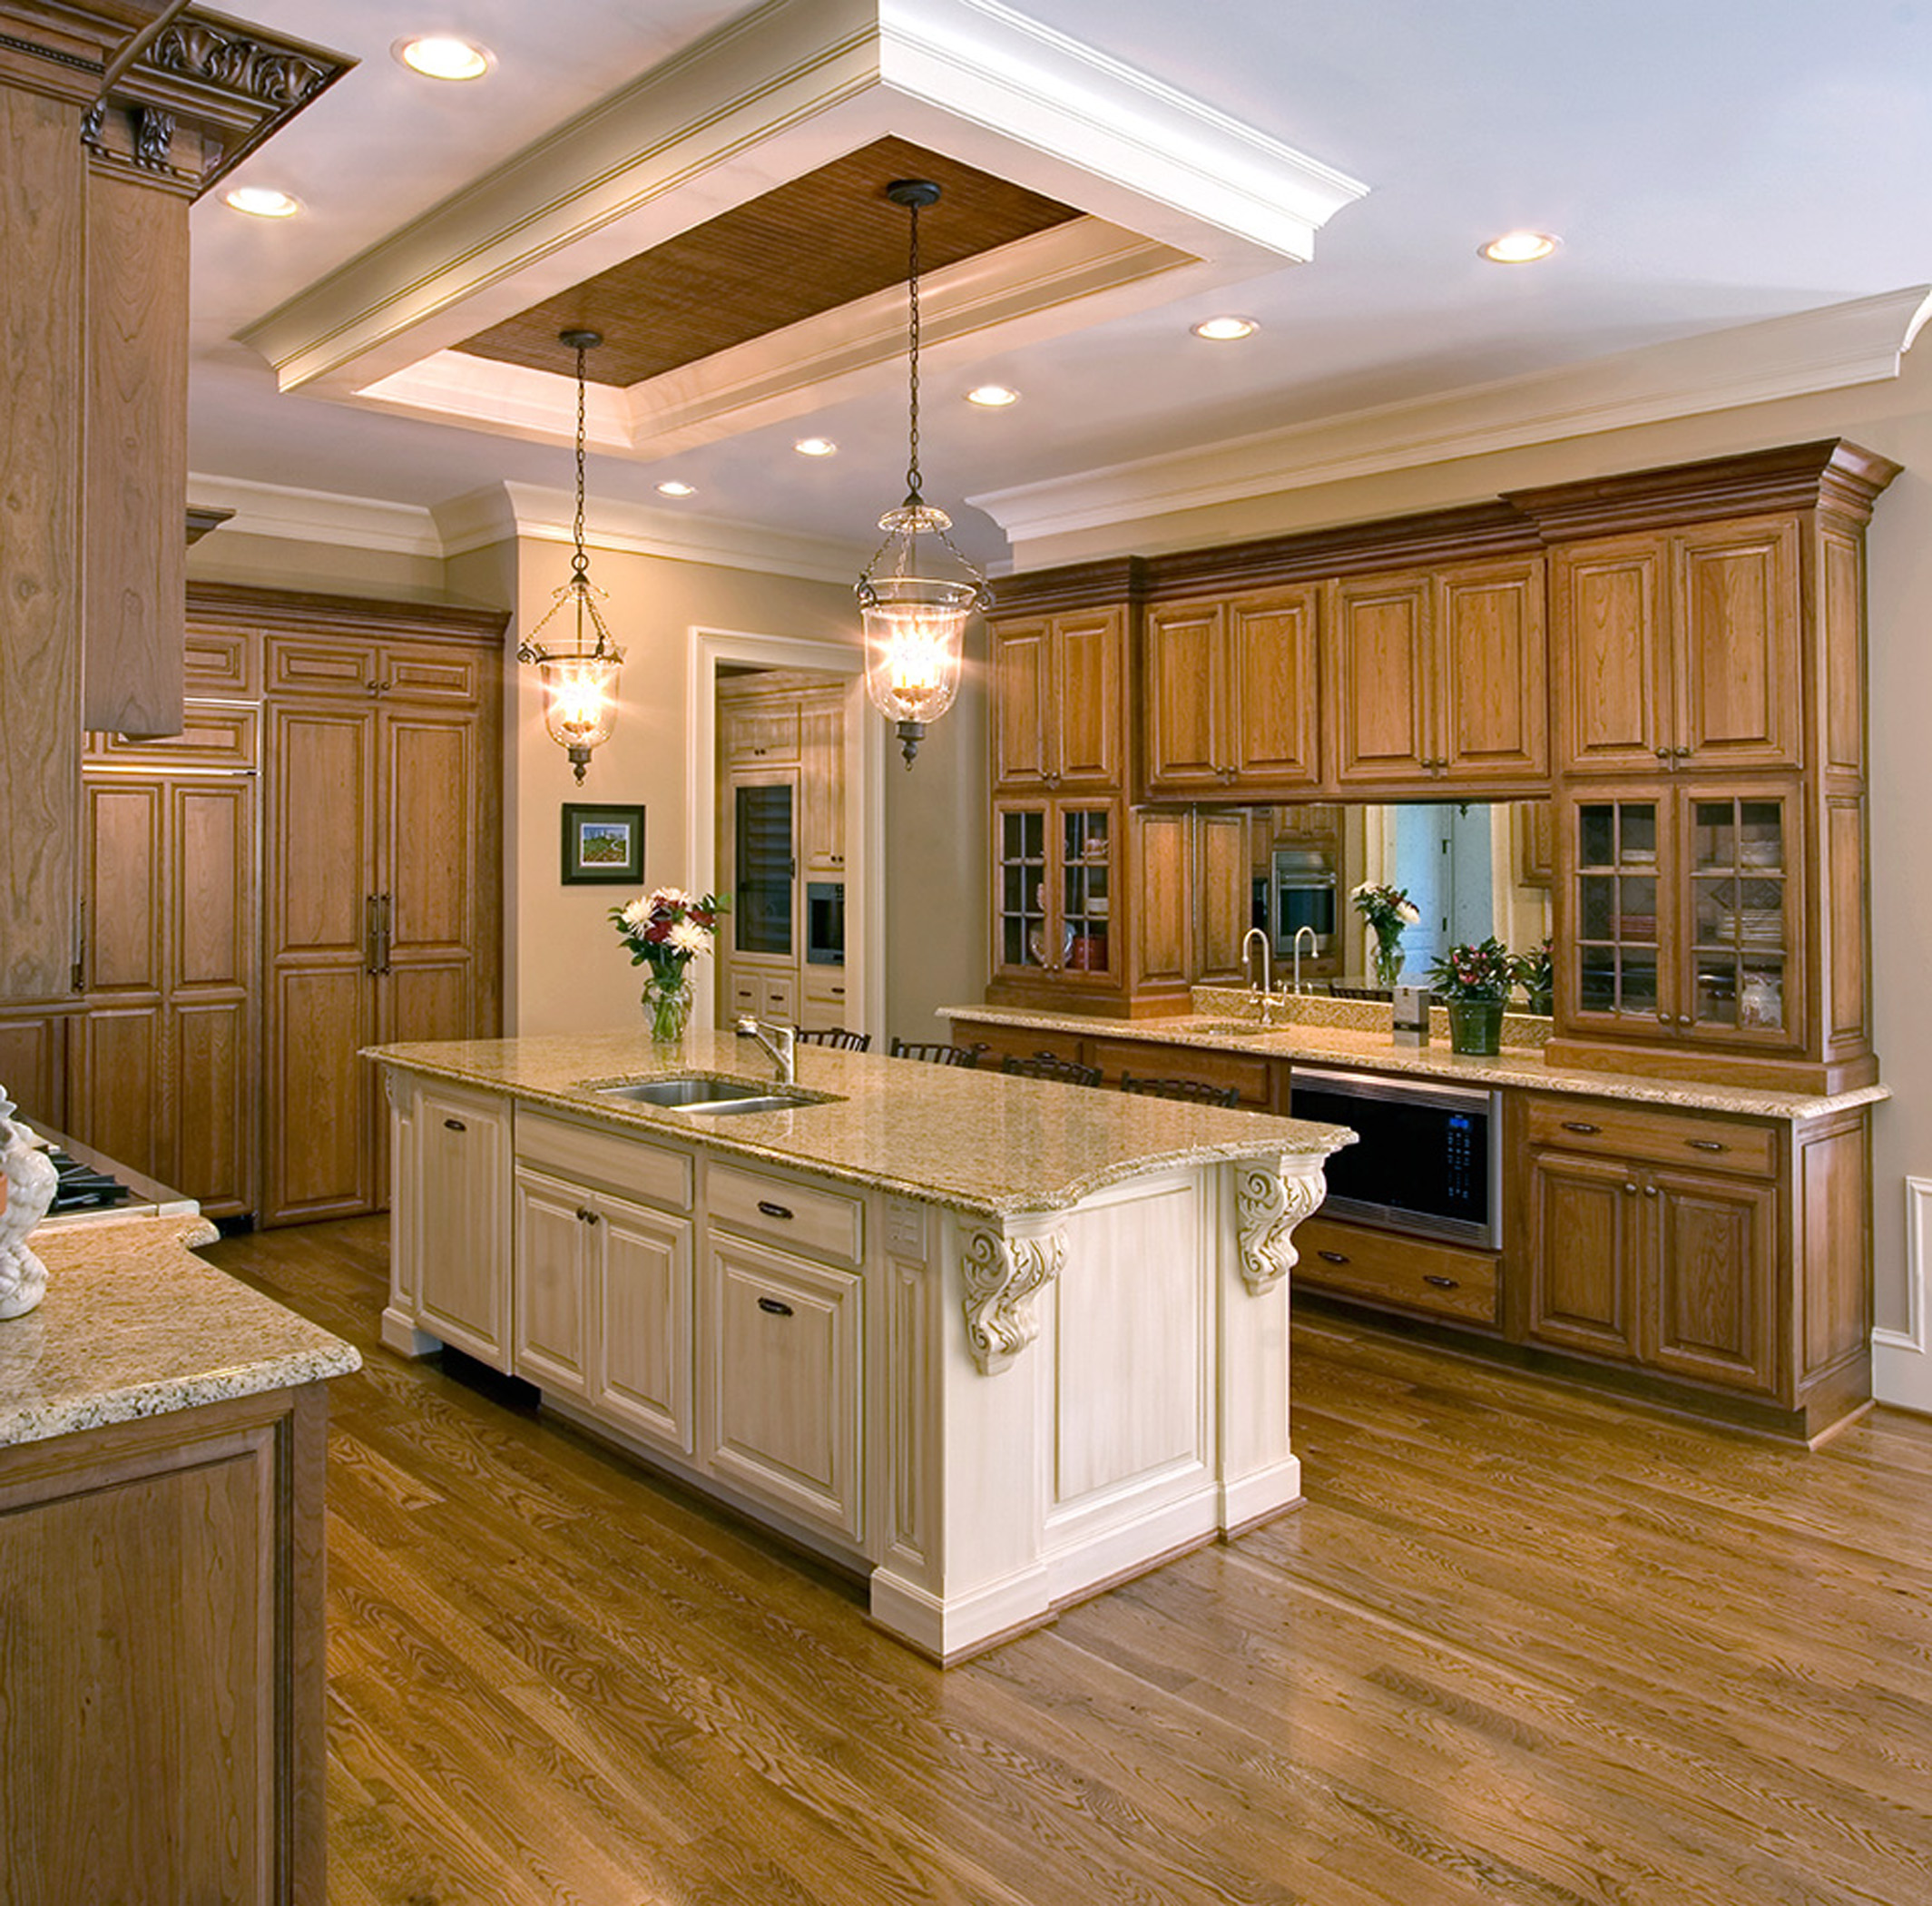 kitchen cabinets pittsburgh pa kitchen cabinet refacing pittsburgh myideasbedroom 6324